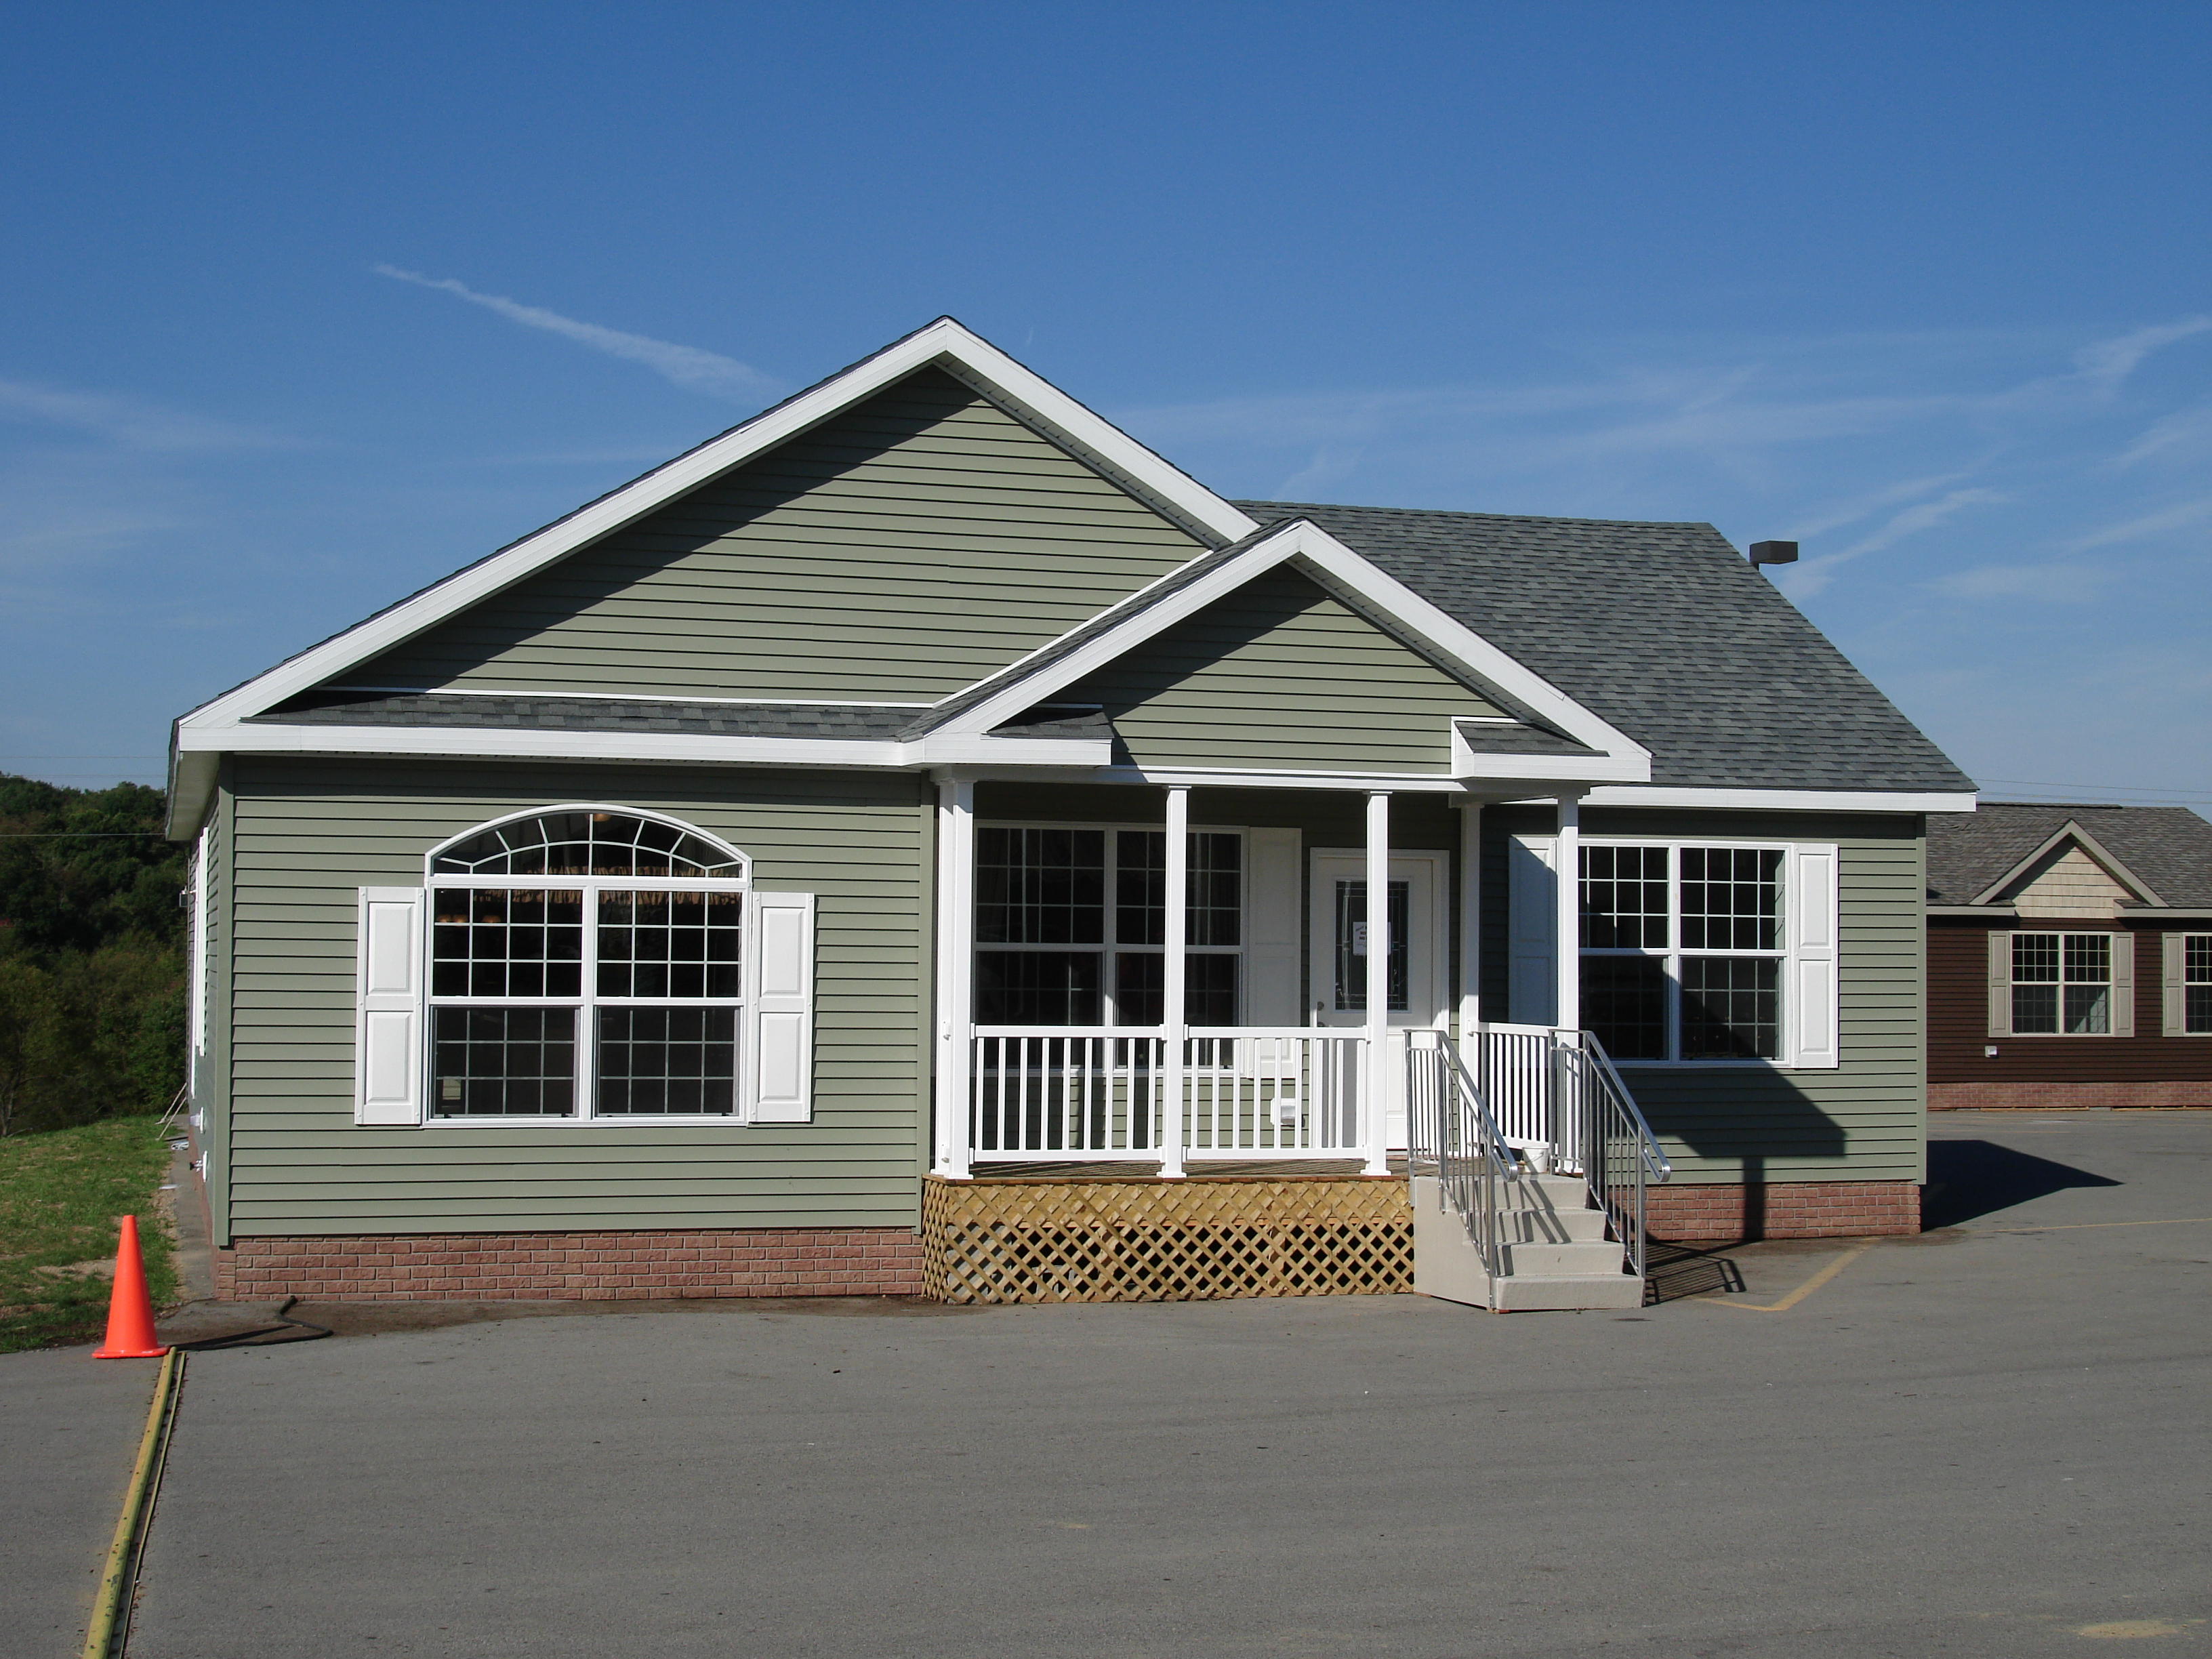 Pennwest Modular Homes